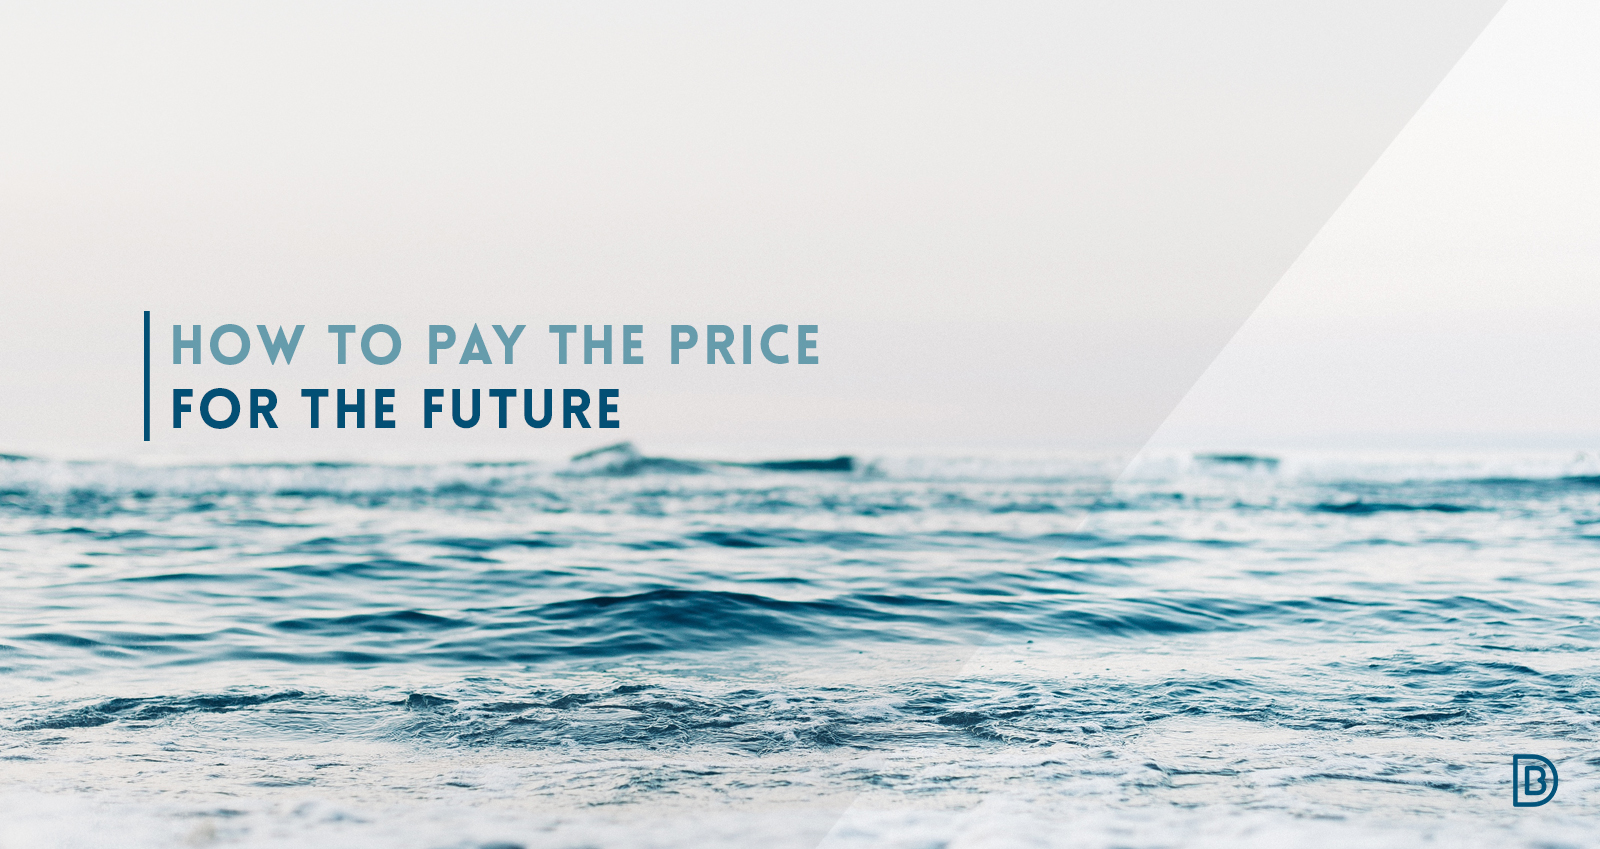 how-to-pay-the-price-for-the-future-design